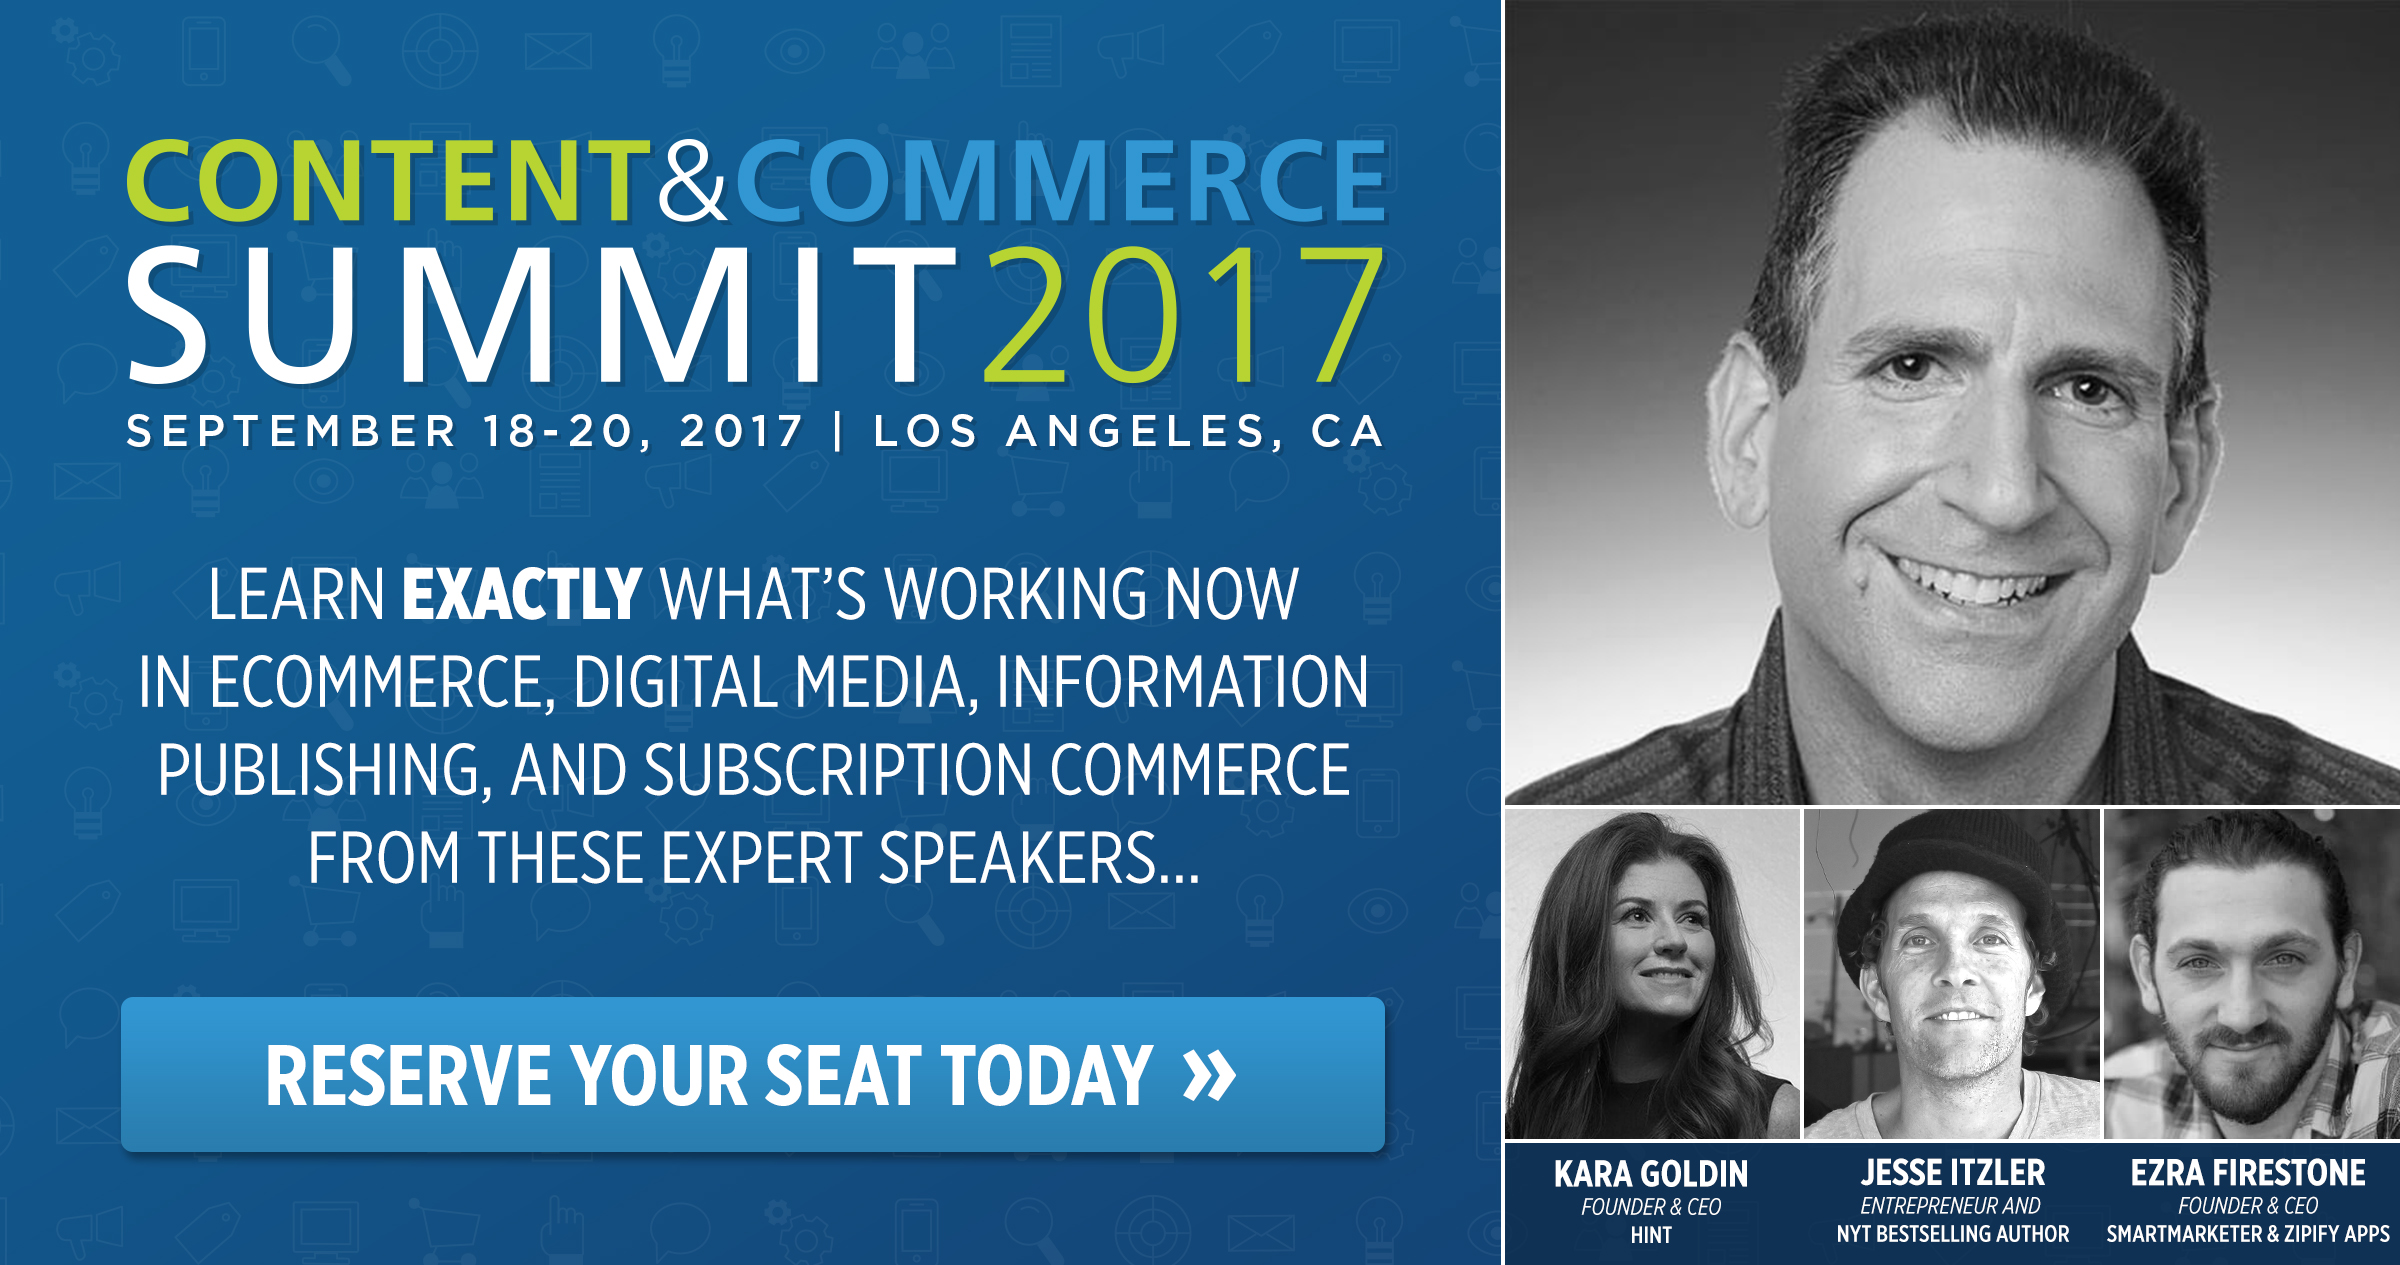 Reserve your seat at Content & Commerce 2017 today to see Bryan Eisenberg and other content and ecommerce experts speak live.